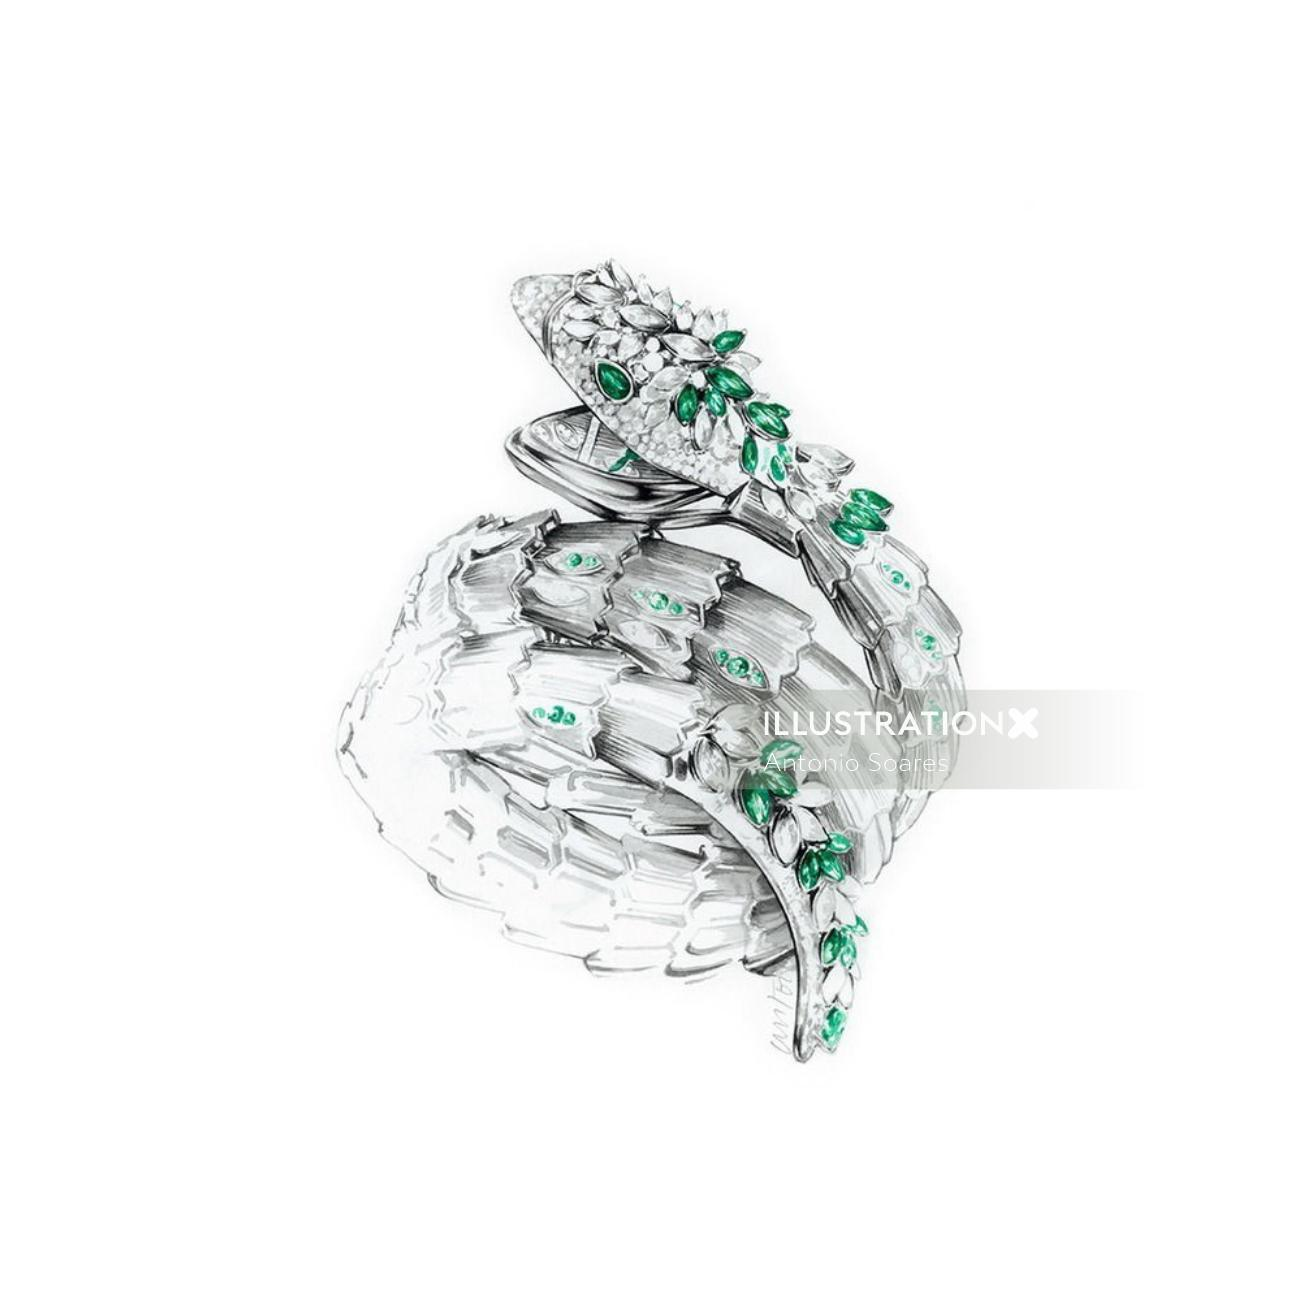 Jewellery illustration of snake ring with stones